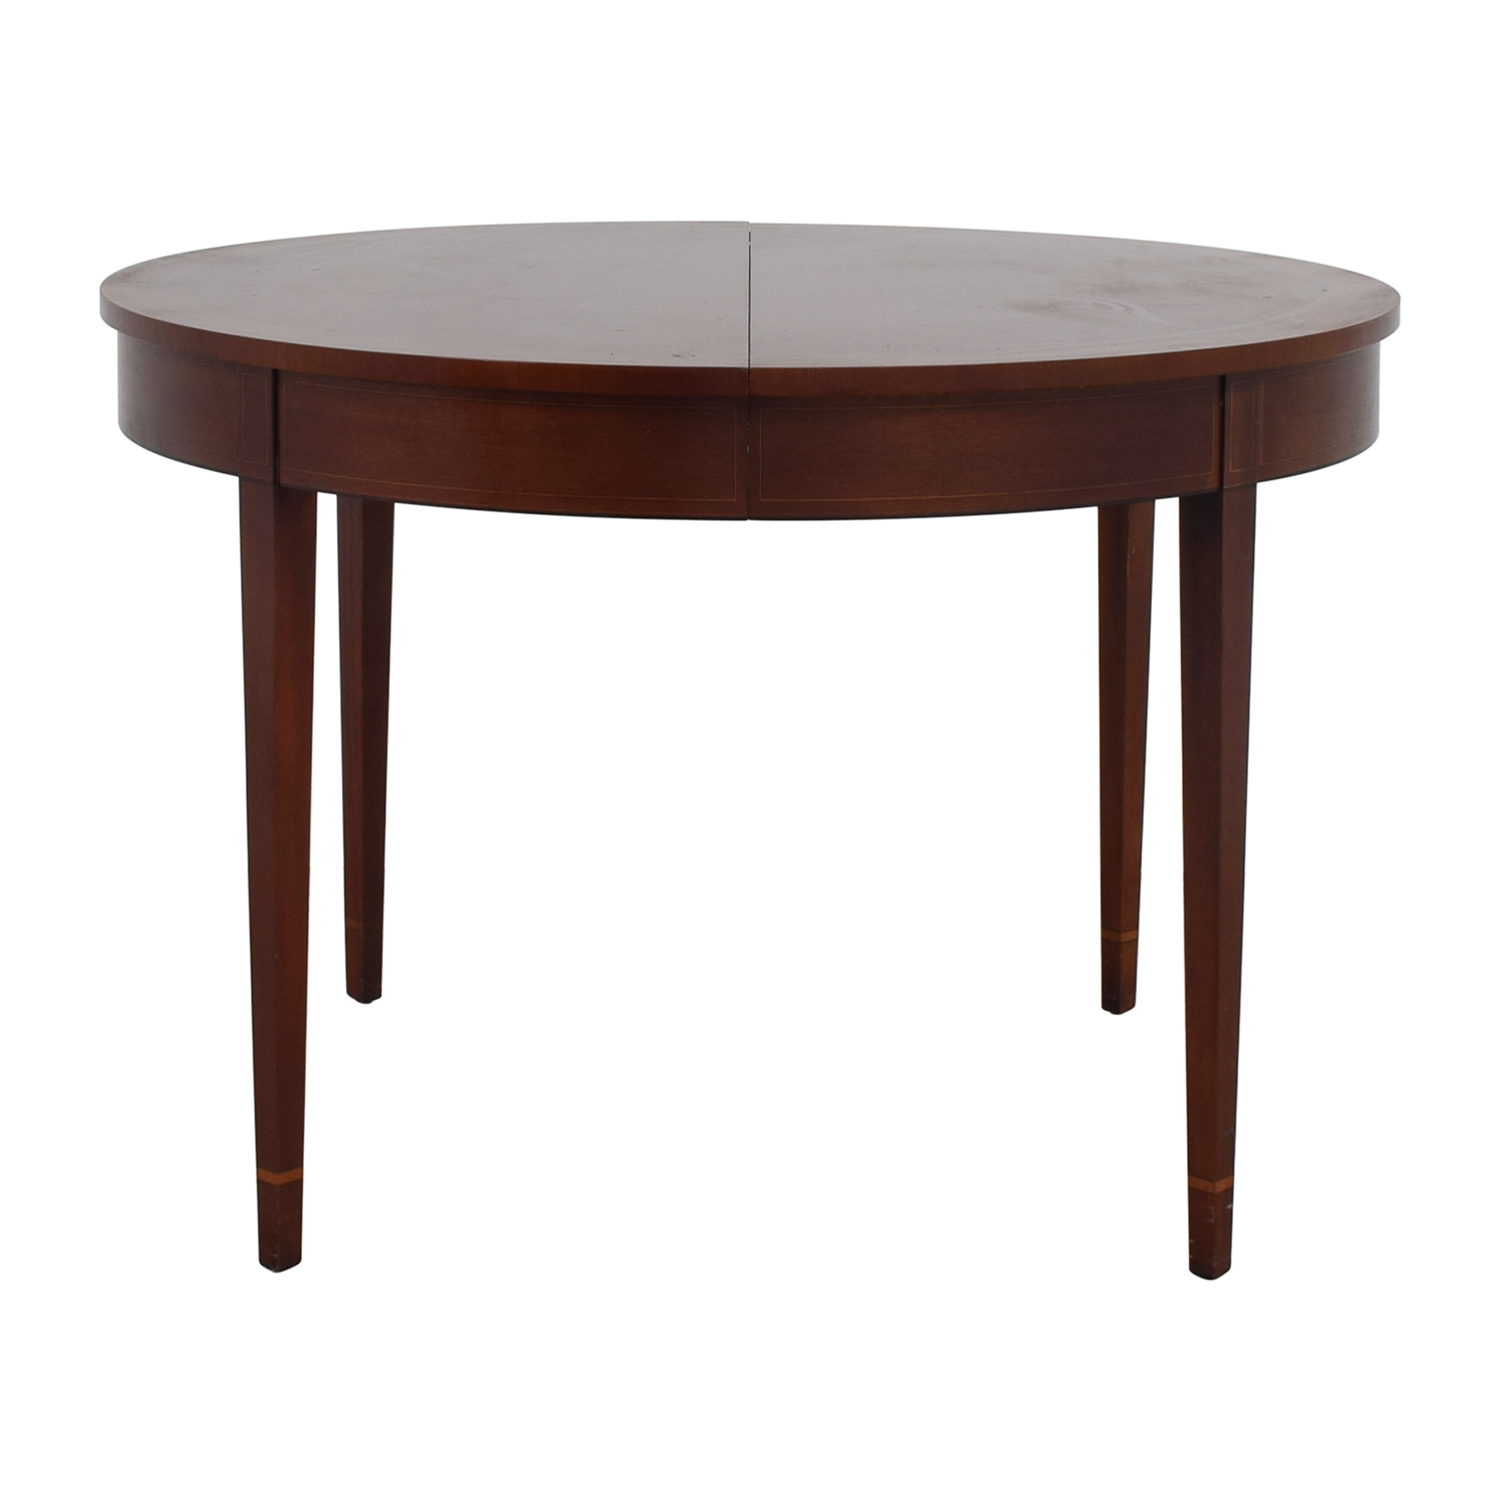 Stickley Stickley HIC 8301-40 Round Wood Table nyc